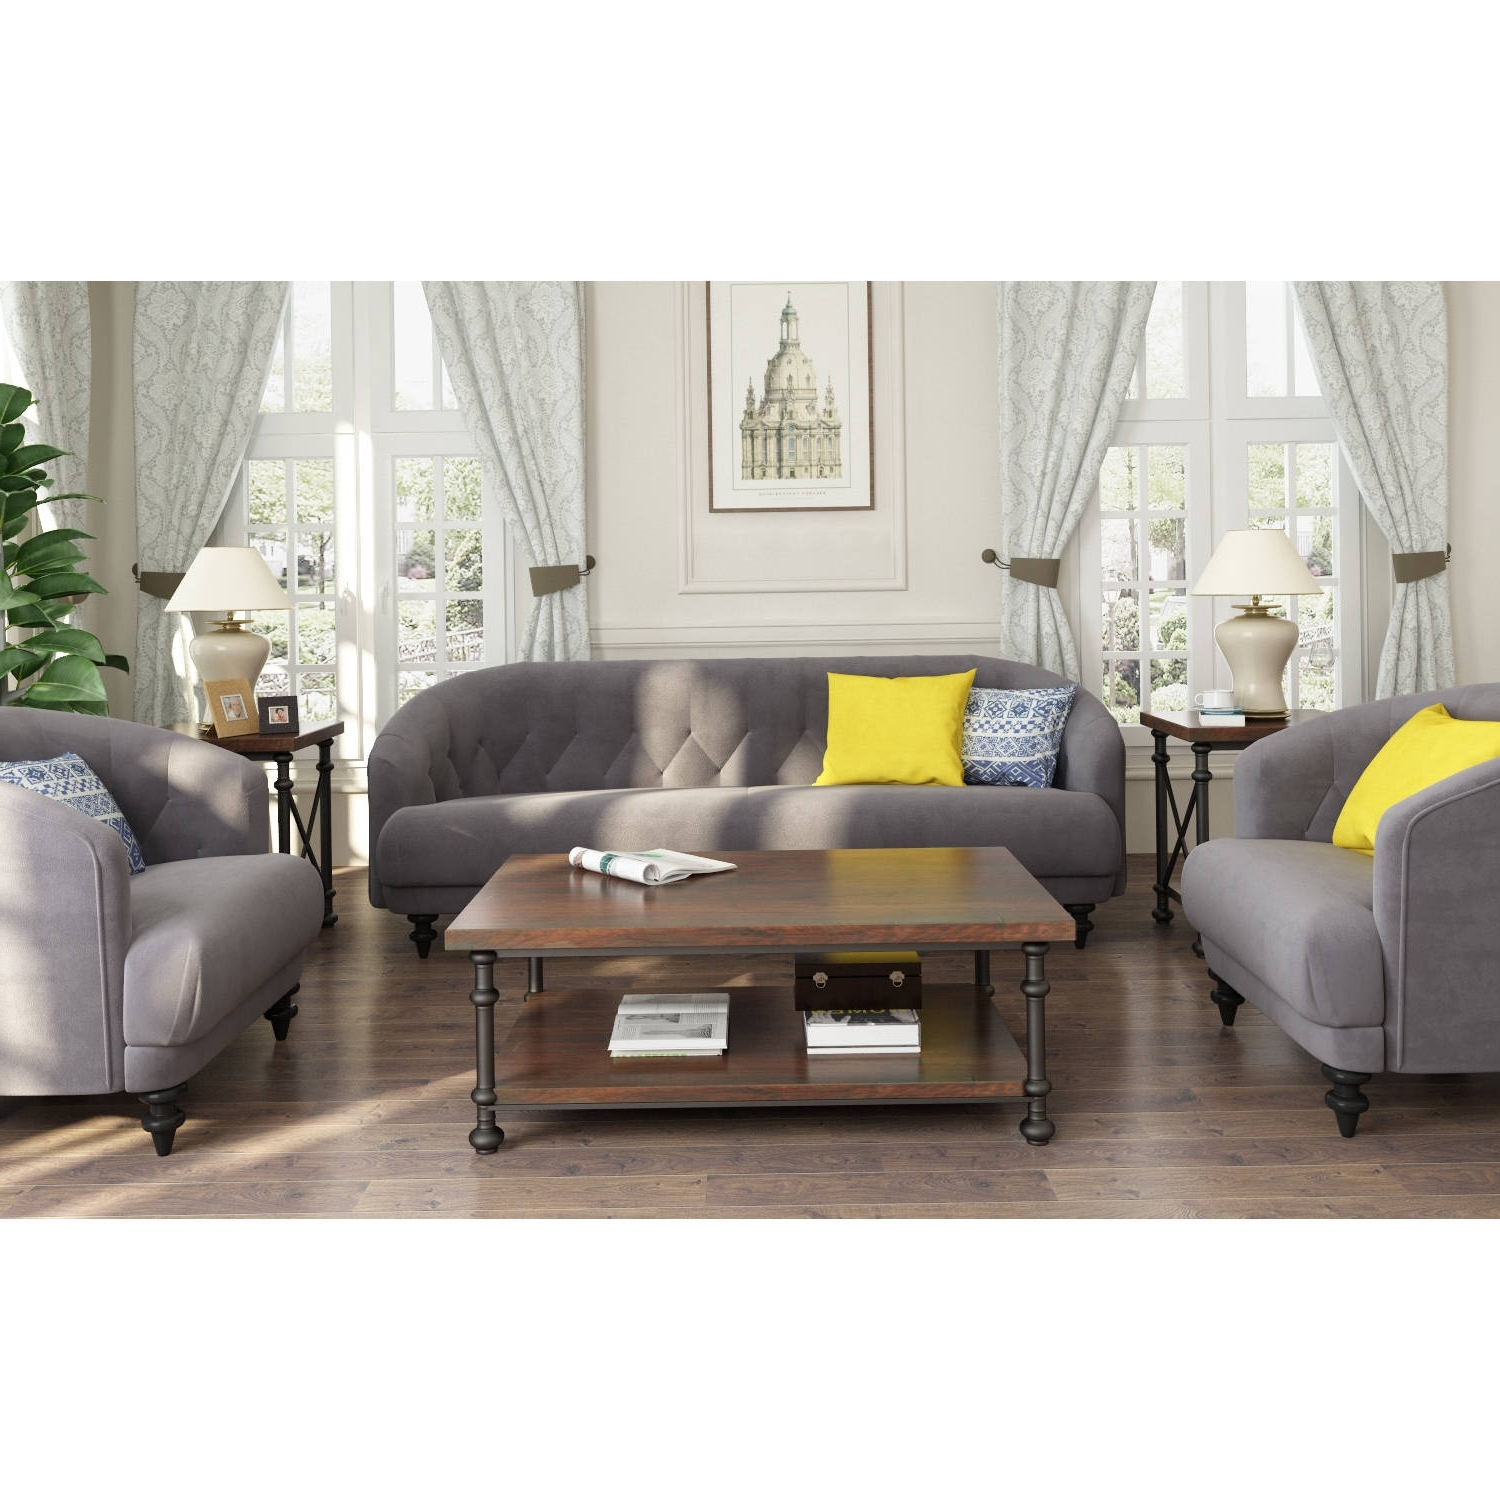 Furniture : Green Tufted Chaise Lounge Furniture Making Ottawa With Most Current Kitchener Sectional Sofas (View 3 of 15)